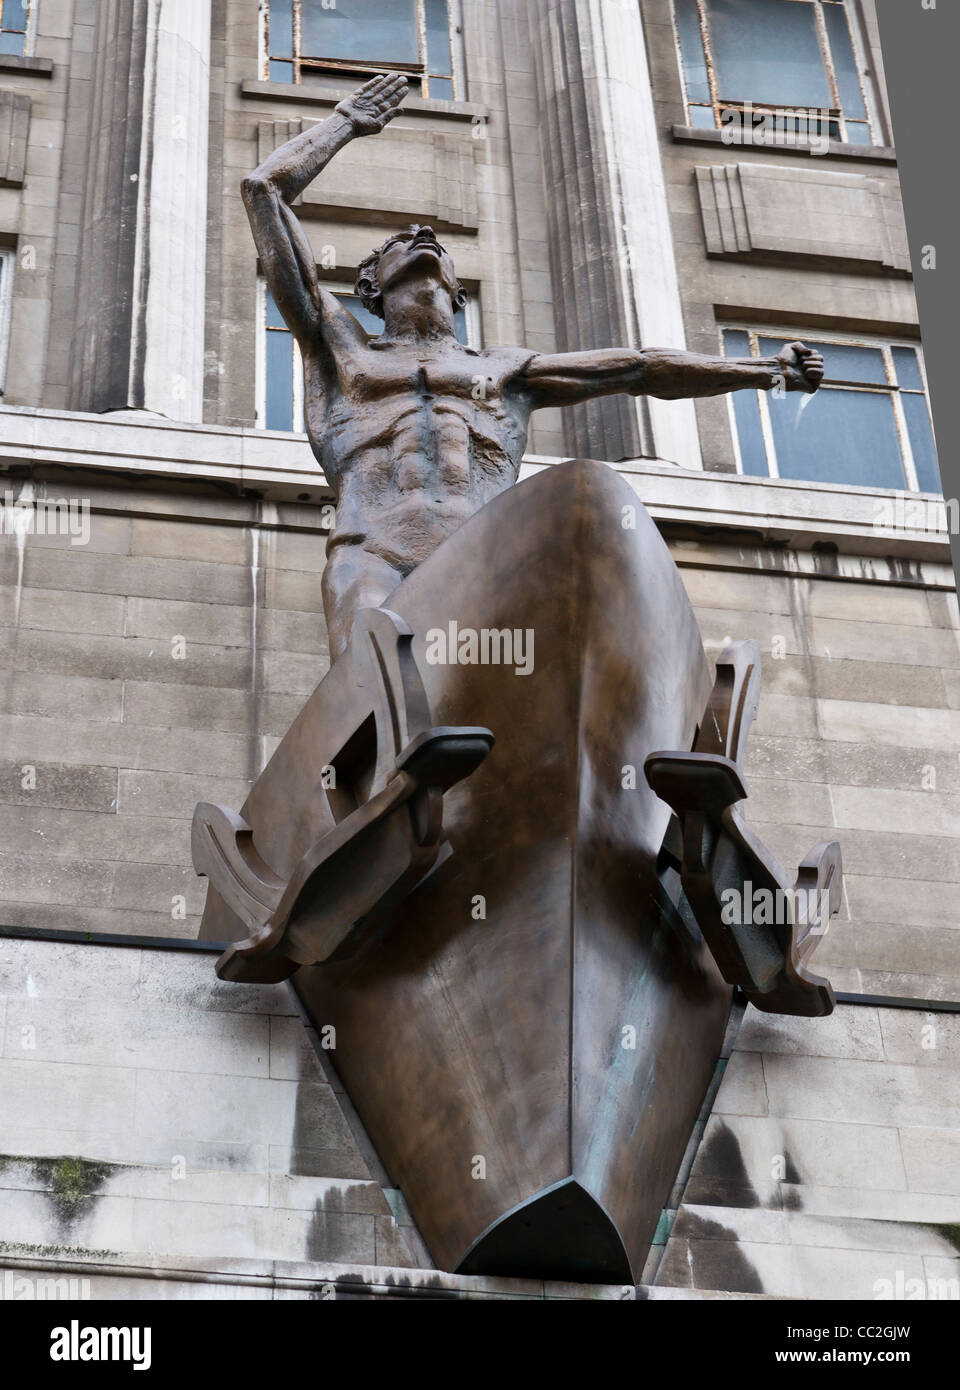 The sculpture by Sir Jacob Epstein called Liverpool Resurgent. - Stock Image